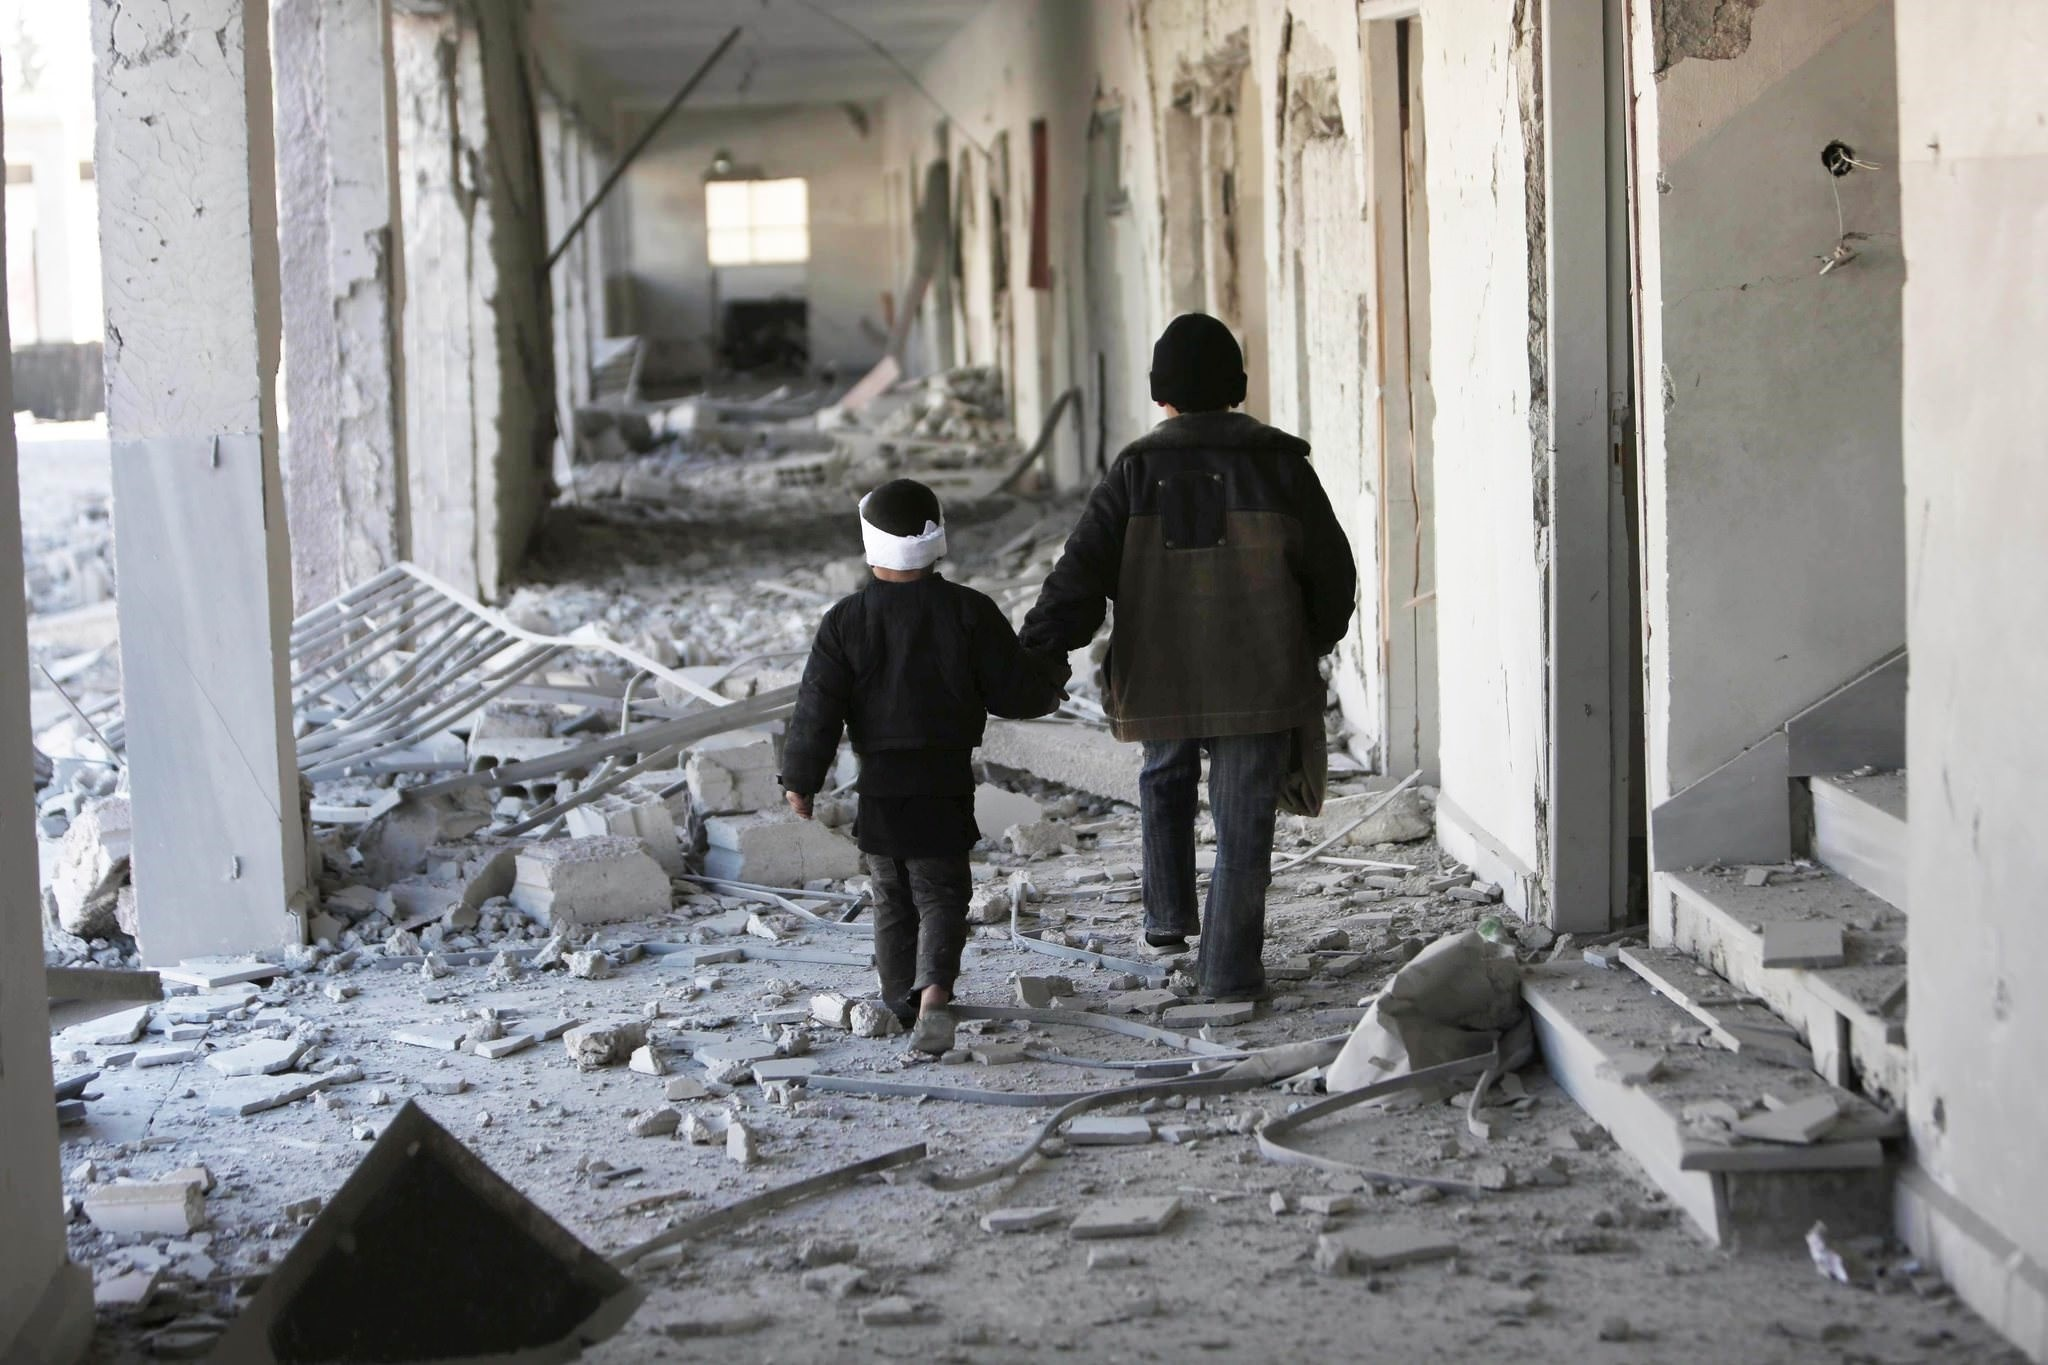 In this Nov. 25, 2015 photo provided by Save the Children, two children walk through the corridors of a destroyed school in Eastern Ghouta, Syria. (Photo by Save the Children via AP)